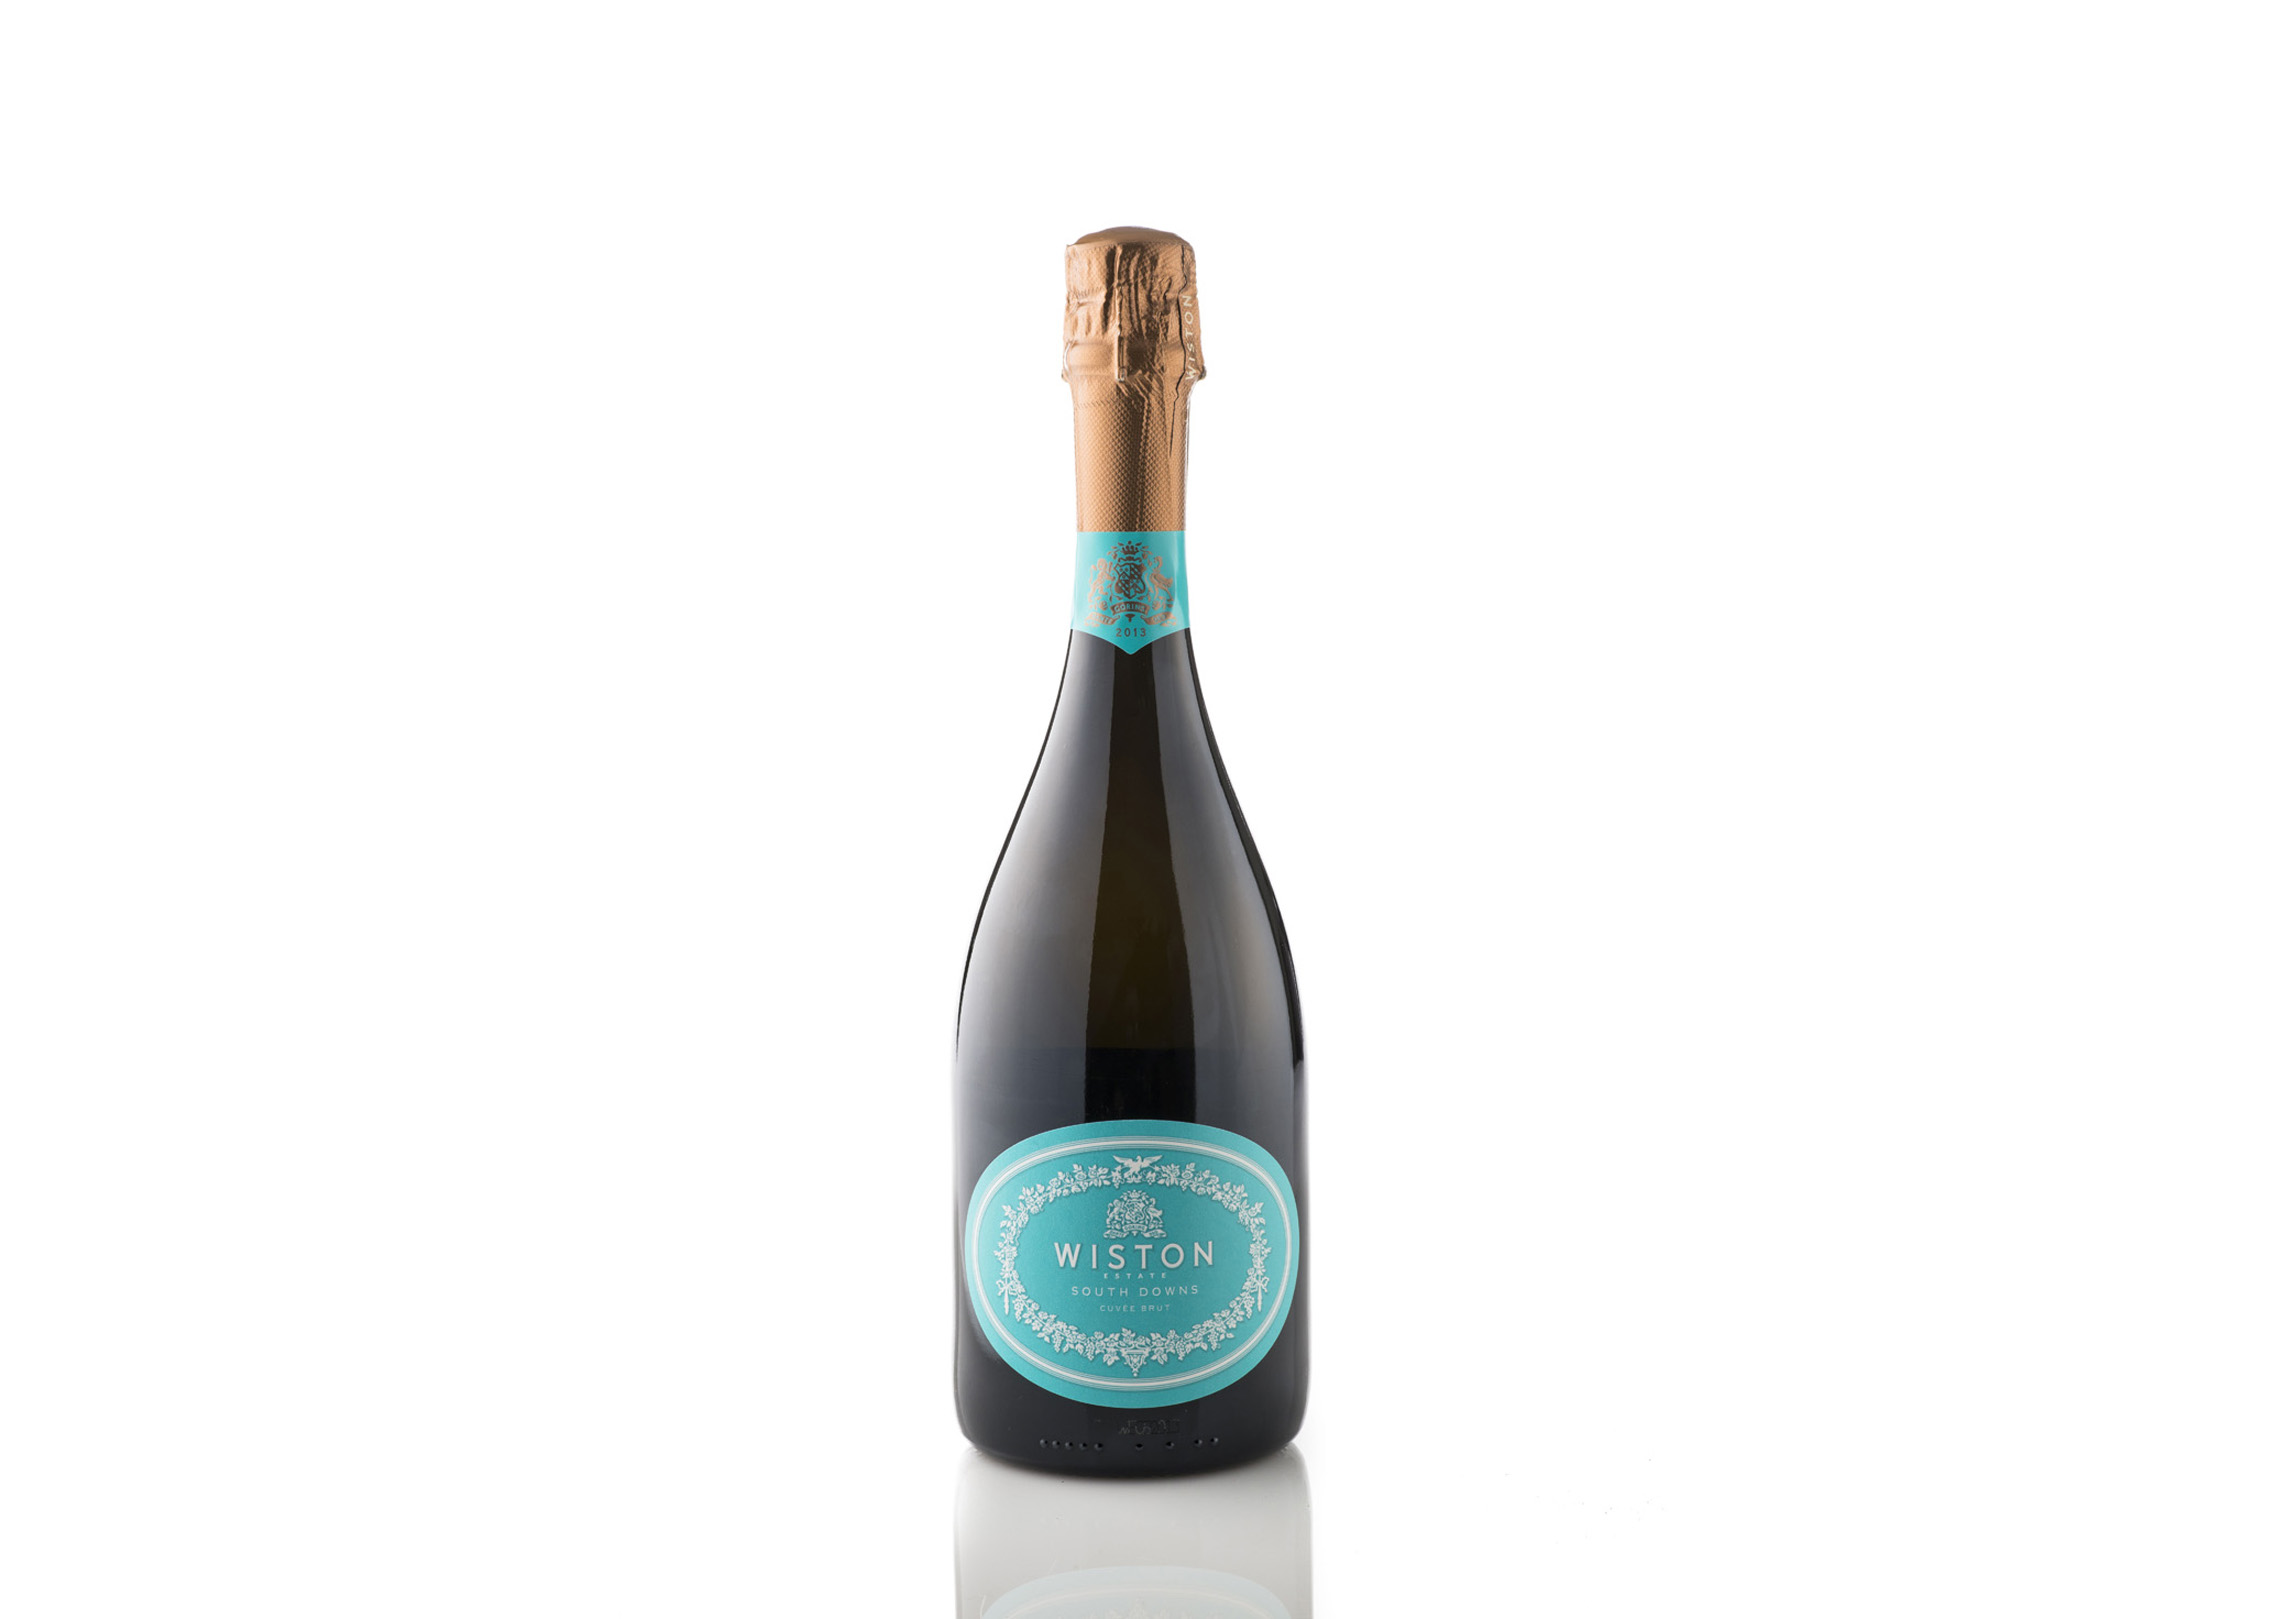 Wiston Estate Cuvee Brut, England